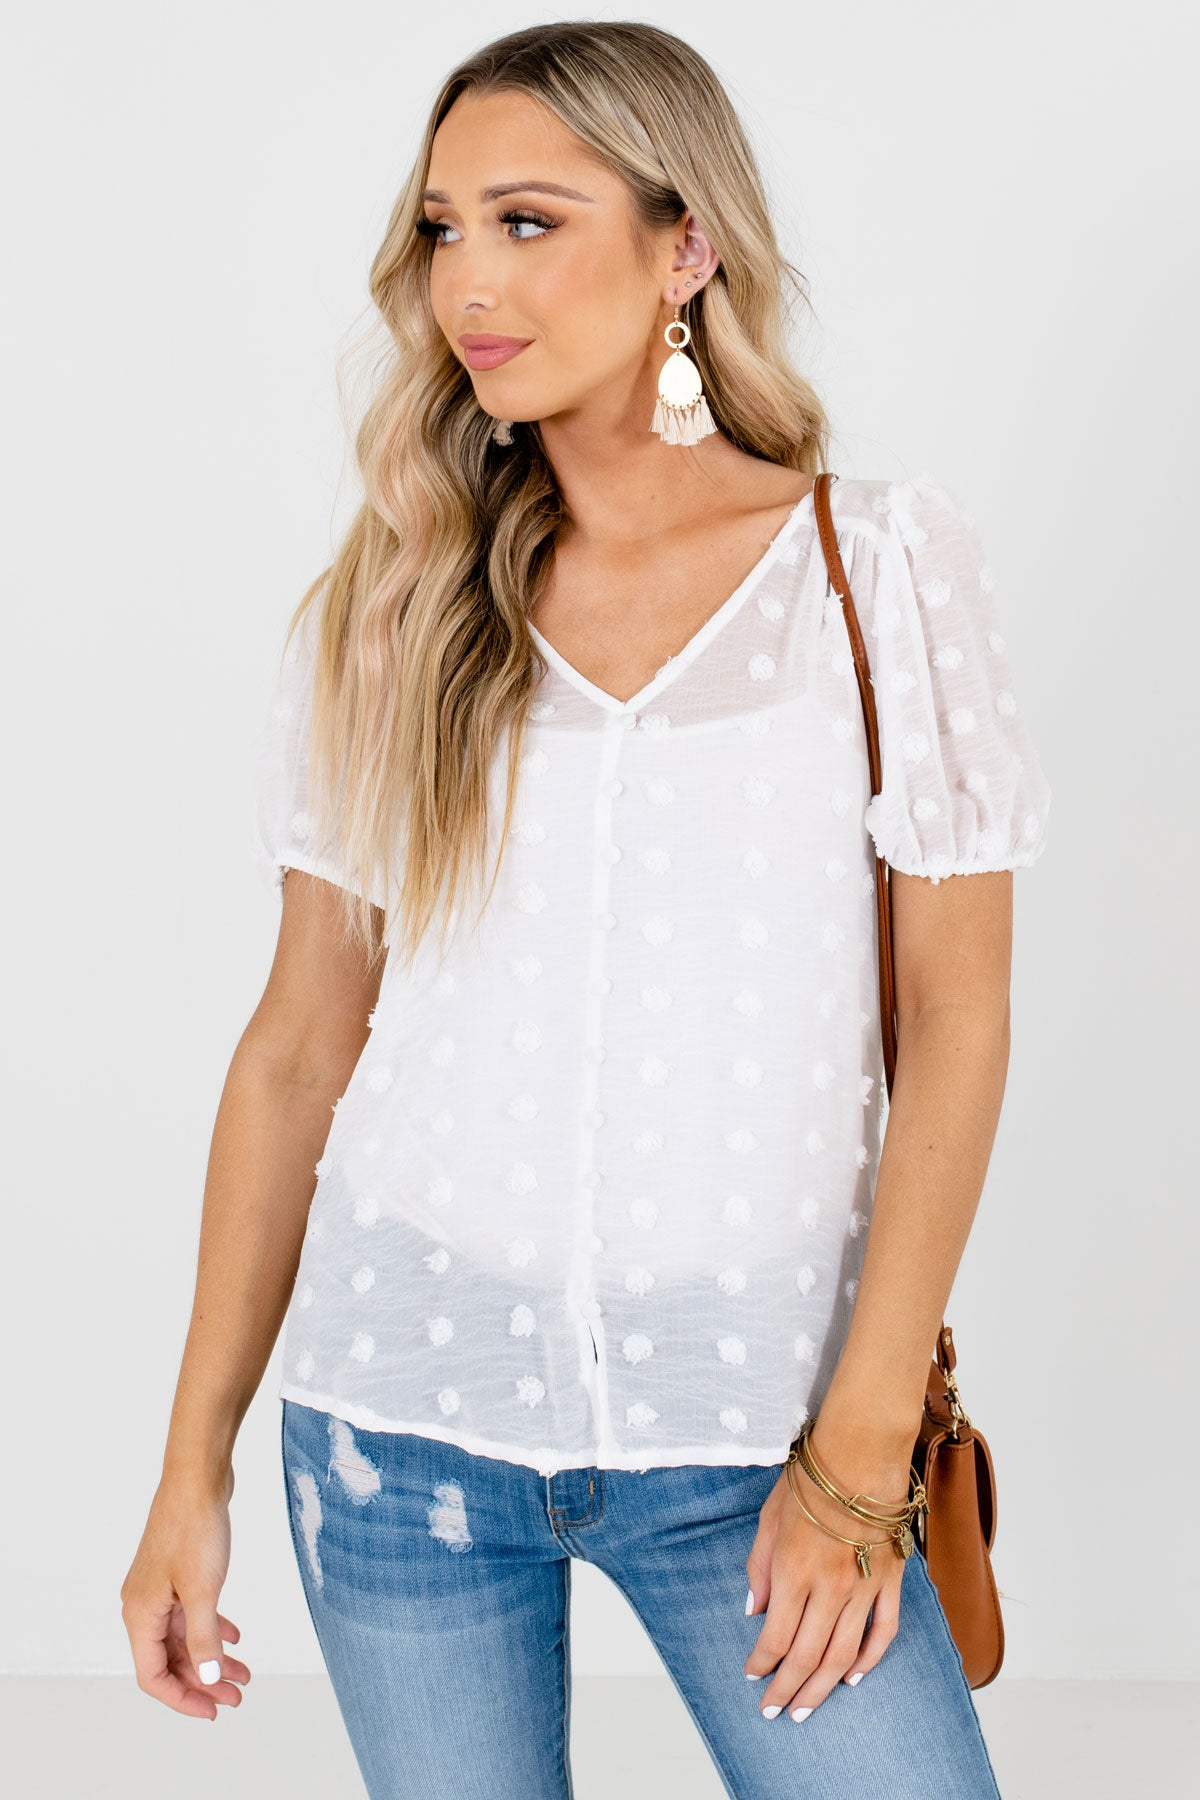 White Polka Dot Textured Material Boutique Blouses for Women